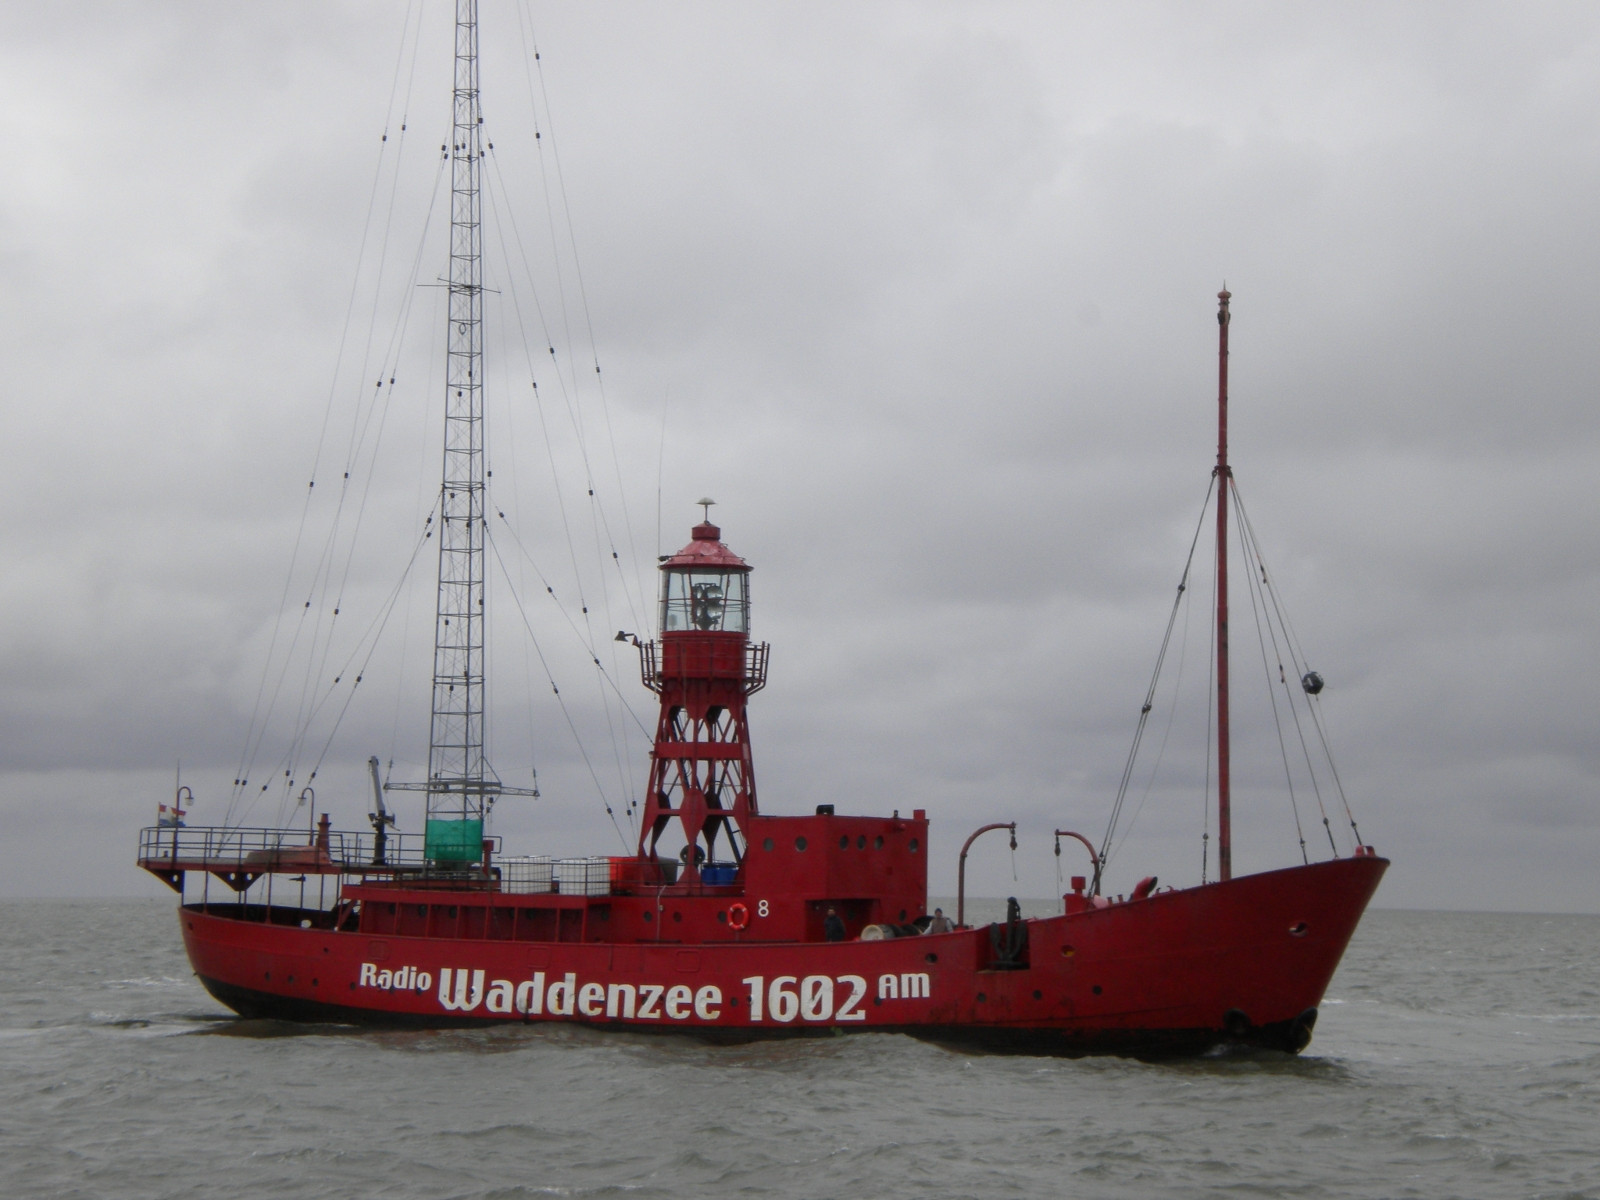 Red_ship_003_-WAD